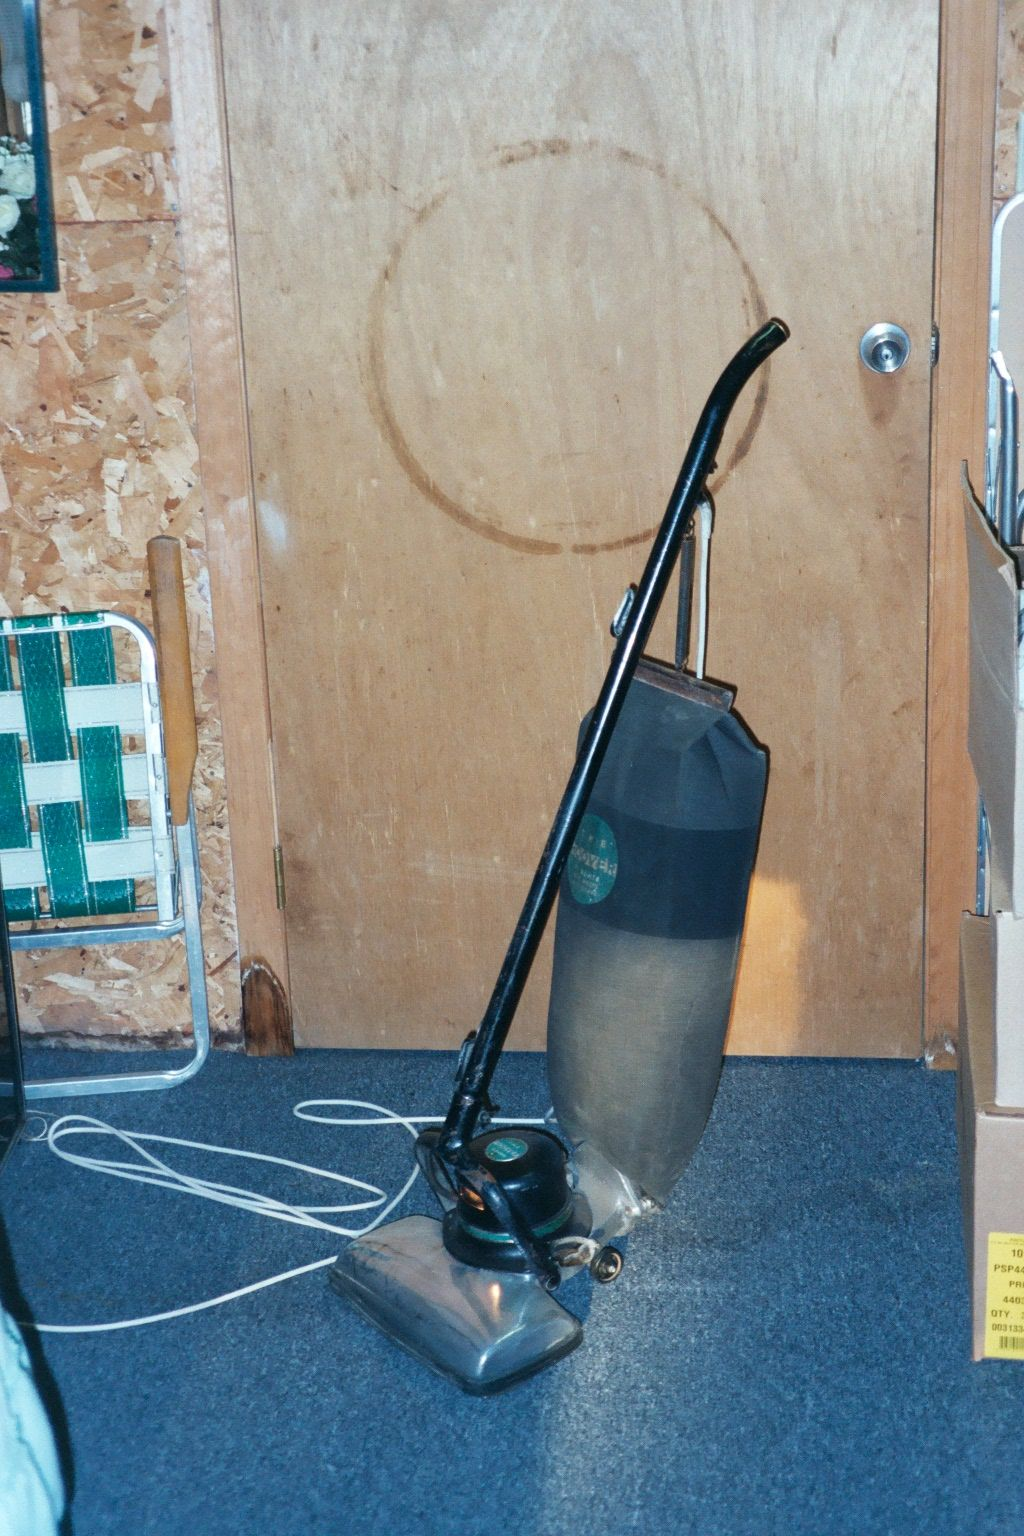 Pin By Snow Thunder On Cool Vacuum Cleaners Kirby Vacuum Upright Vacuums Vacuum Cleaner